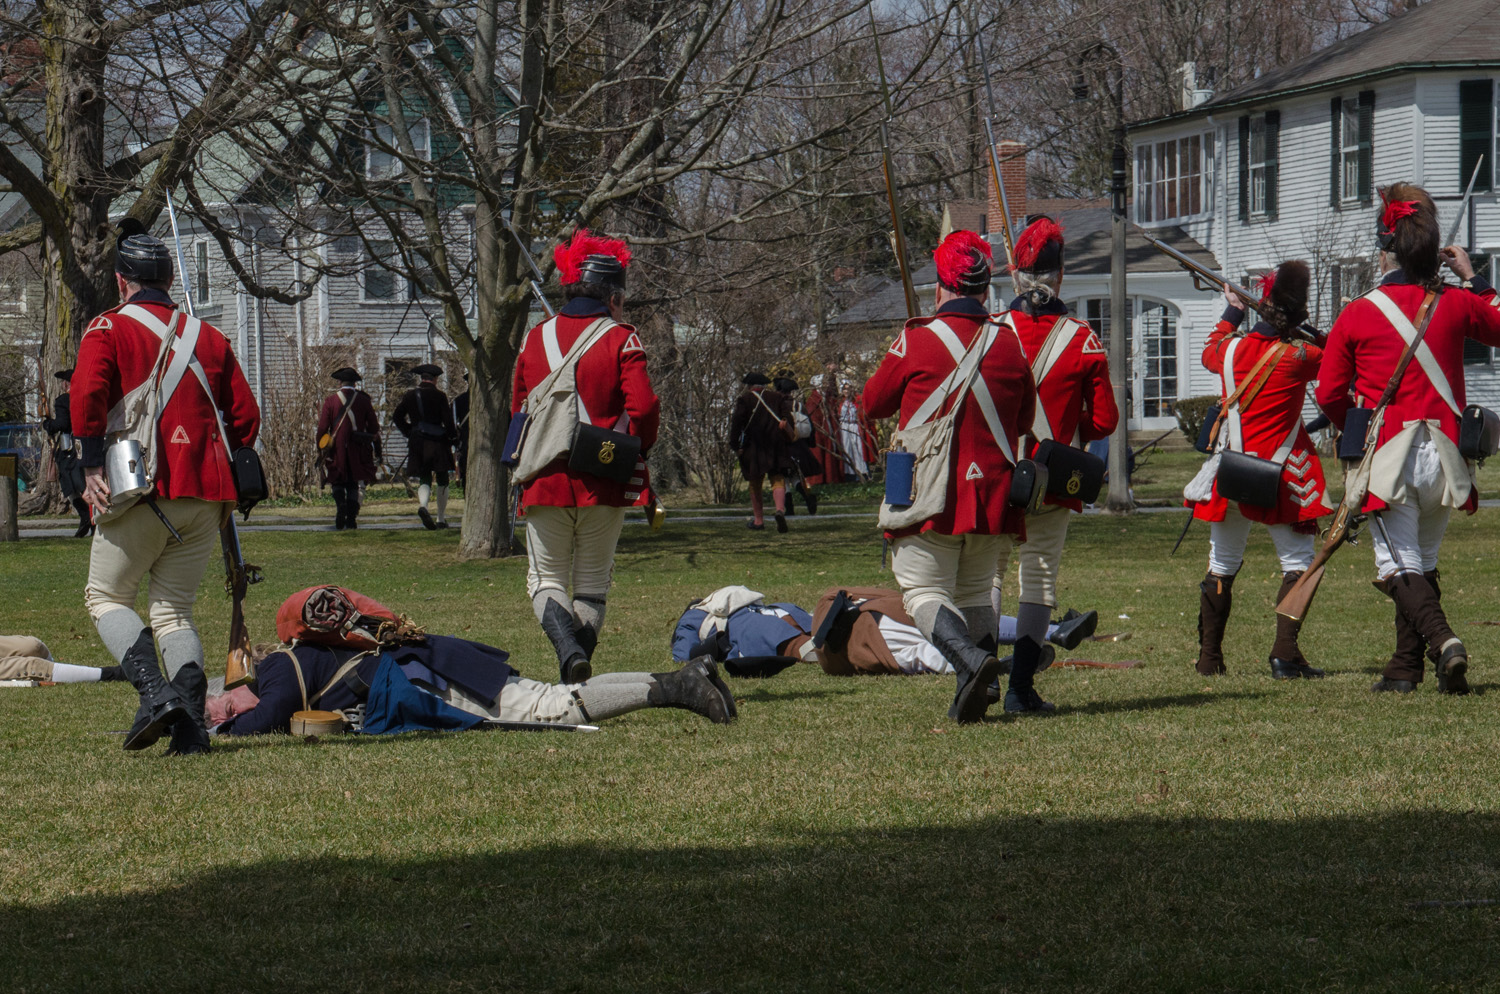 As the rehearsal concludes, the Redcoats march through the fallen on Lexington Green. (Sharon Brody/WBUR)